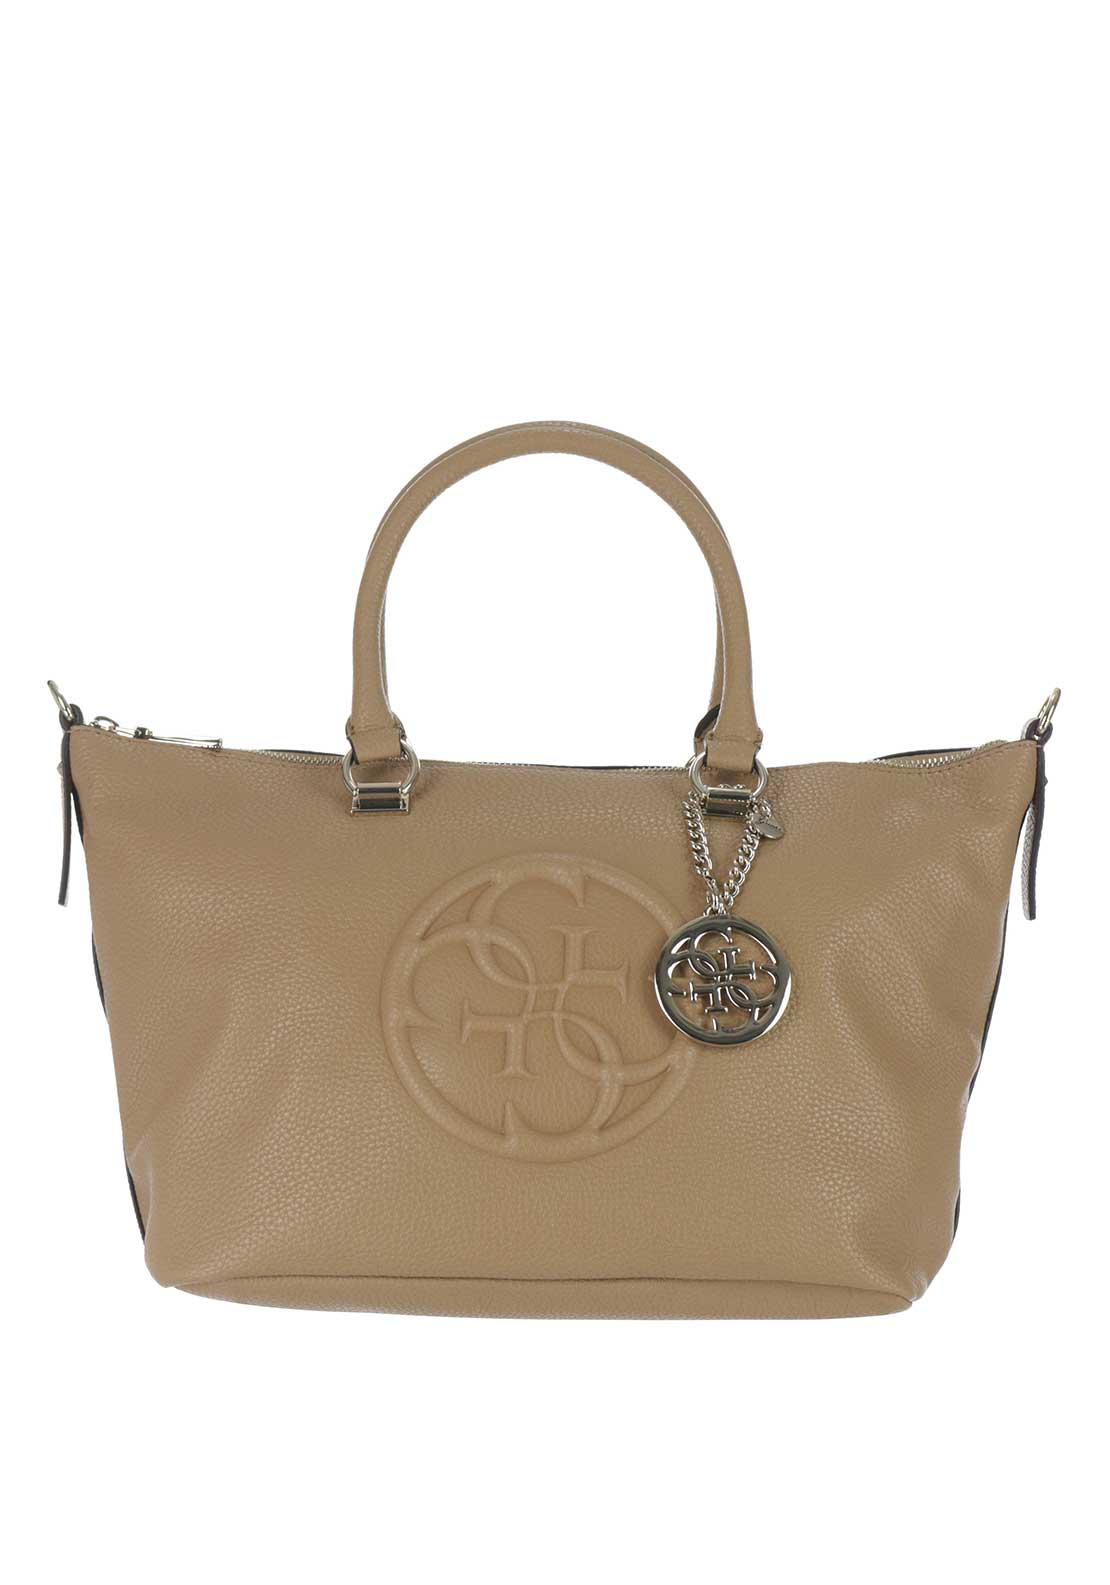 Guess Korry Crush Tote Bag, Camel